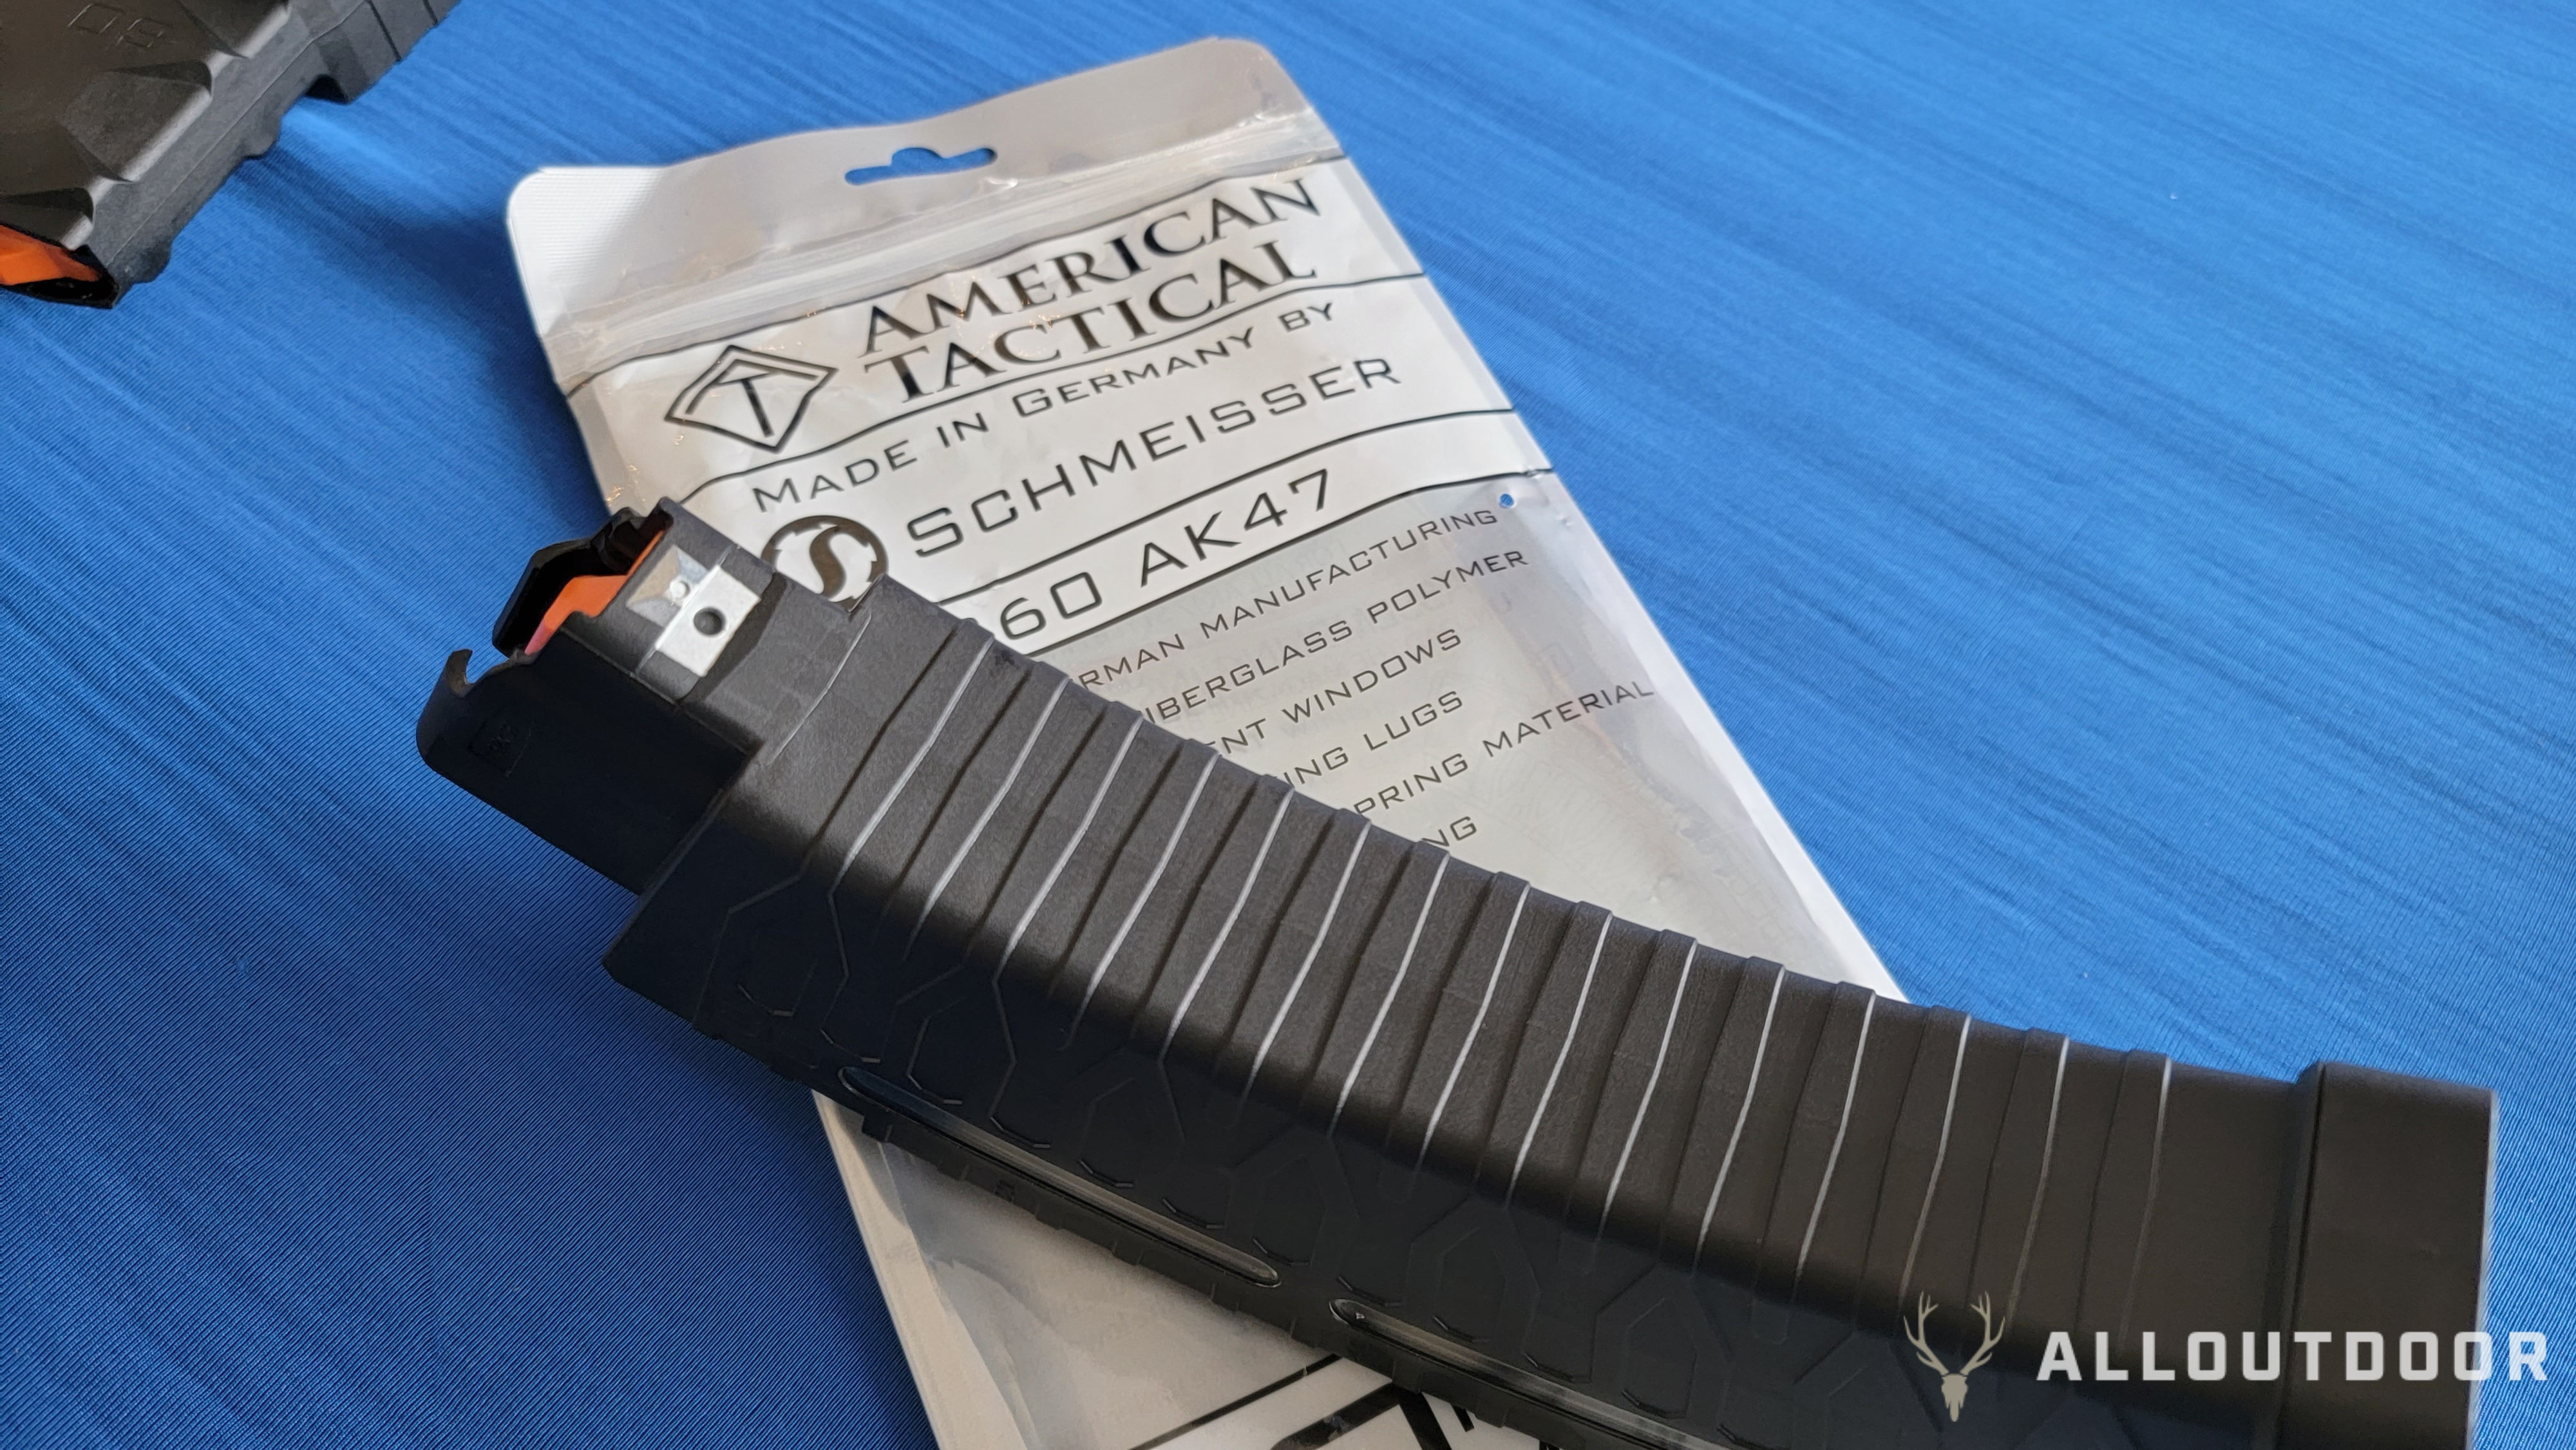 NEW Schmeisser S60 AK Magazine Coming Soon from ATI